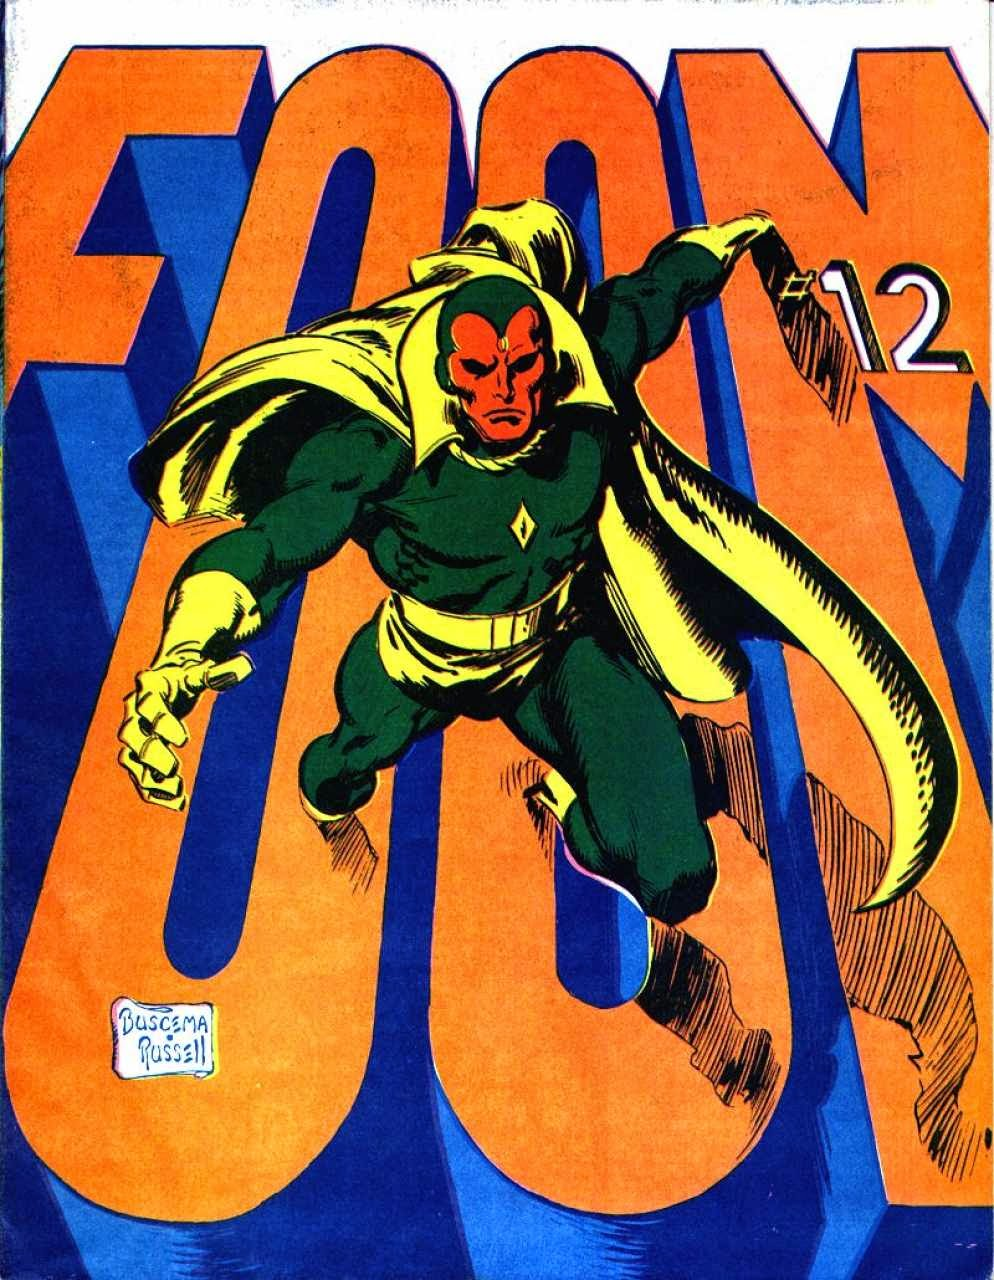 FOOM #12, The Vision